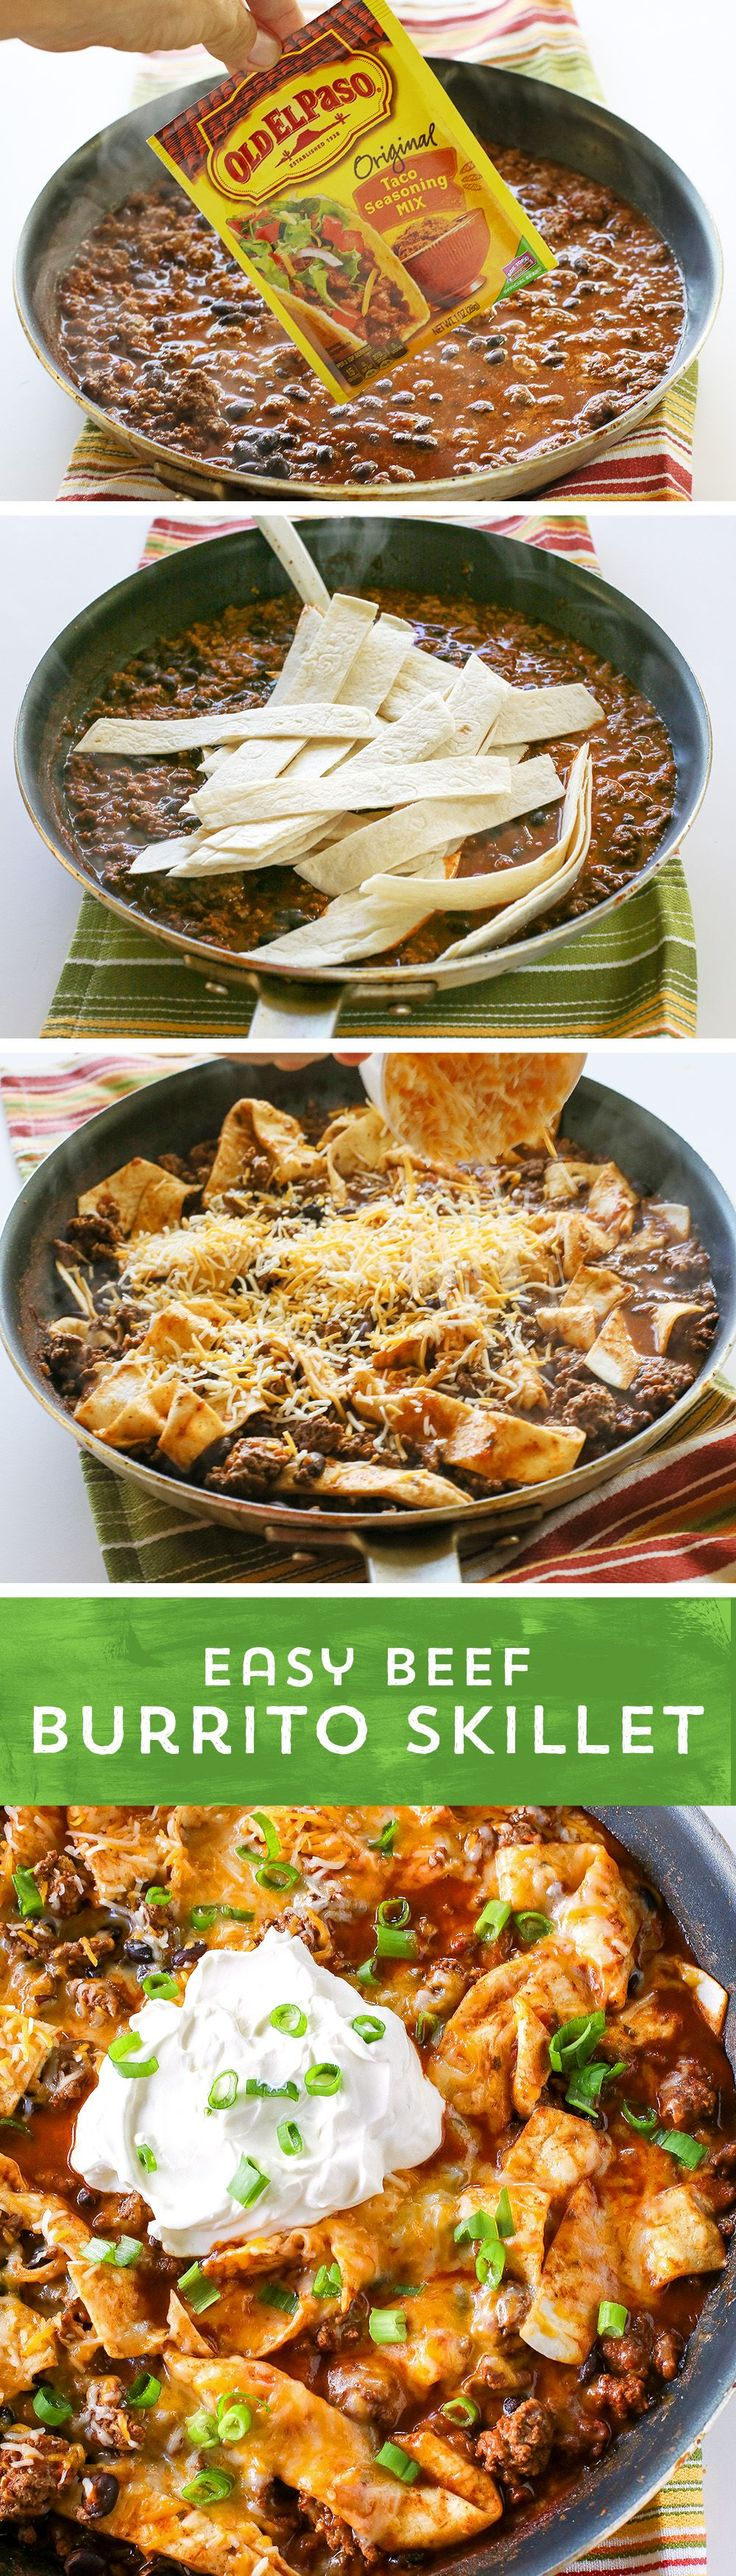 Easy Beef Burrito Skillet ~ The perfect dinner solution... This recipe is everything you love about burritos without all the messy folding & filling falling out - It's just one pan, and it's ready to eat in just 20 minutes!